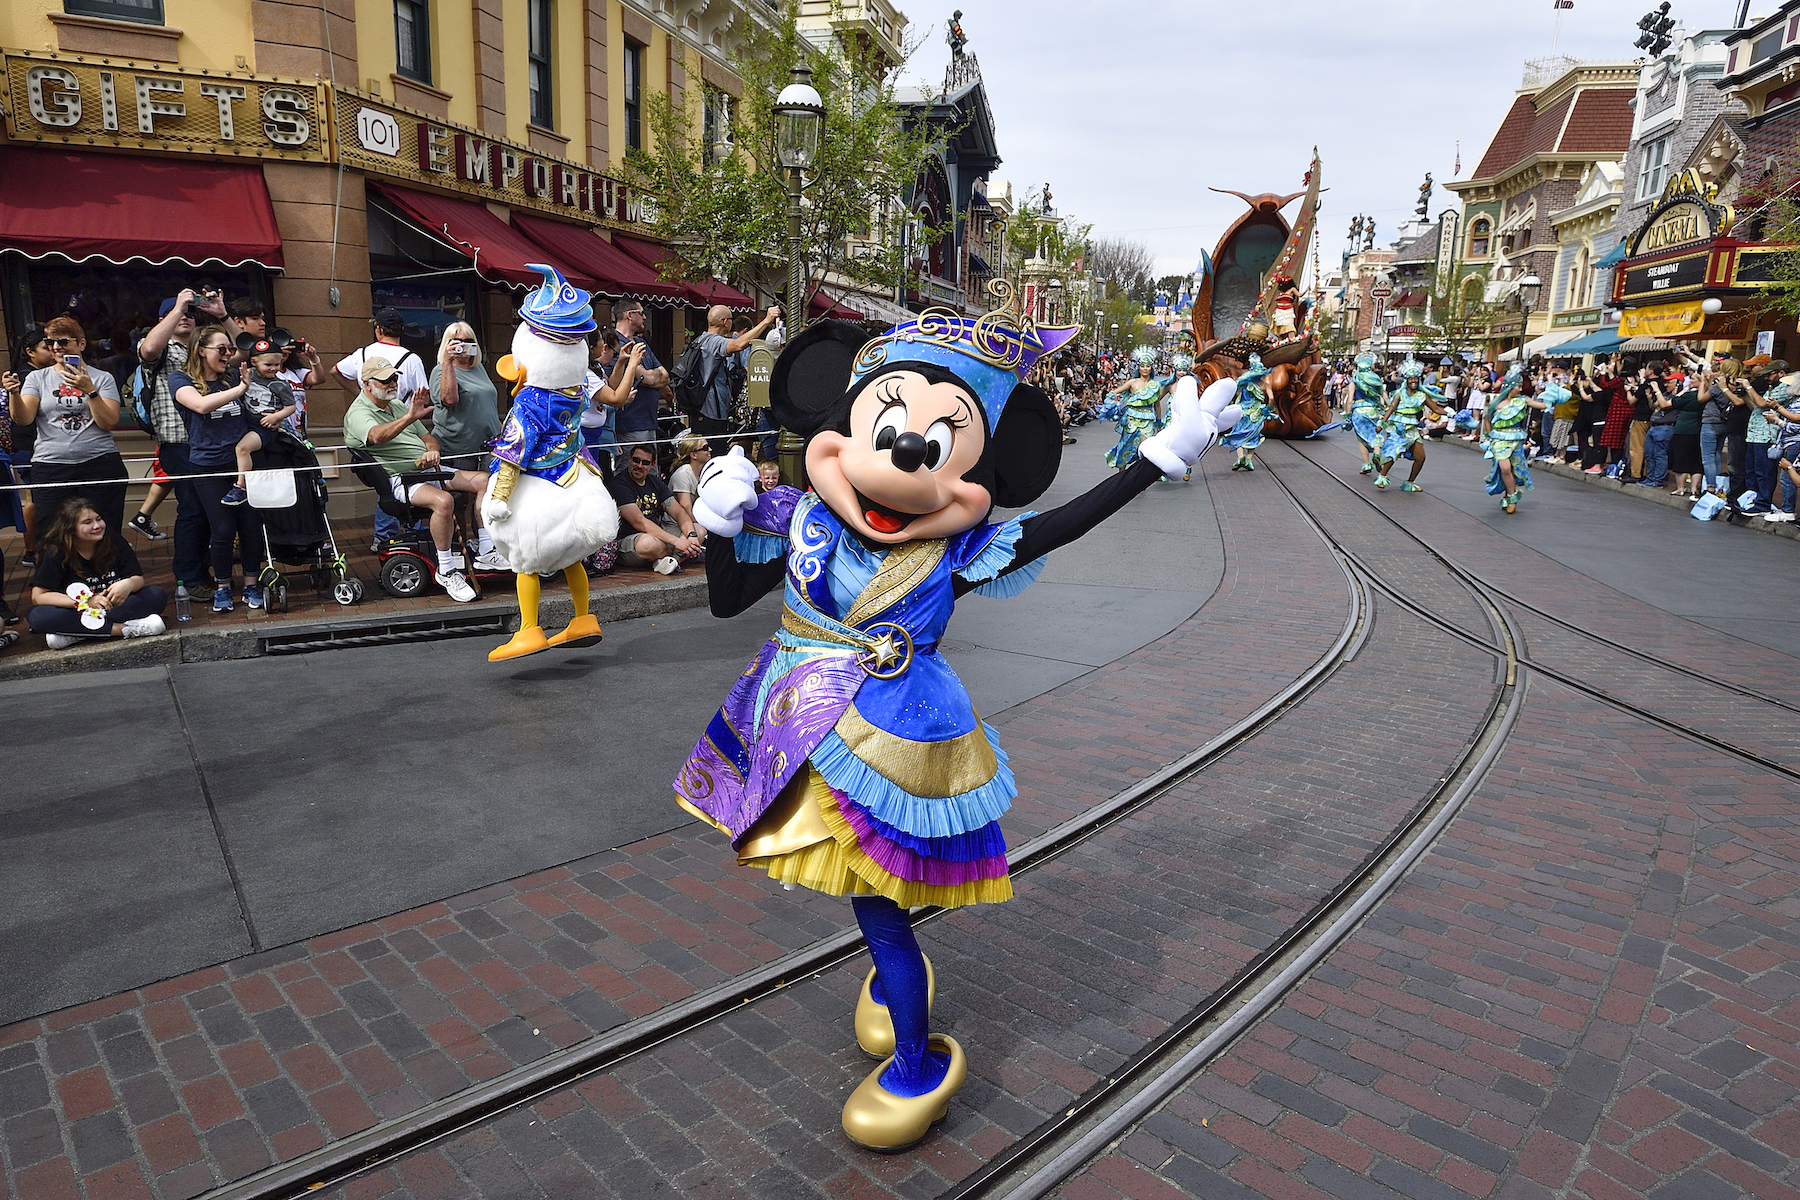 Minnie Mouse in Disneyland parade